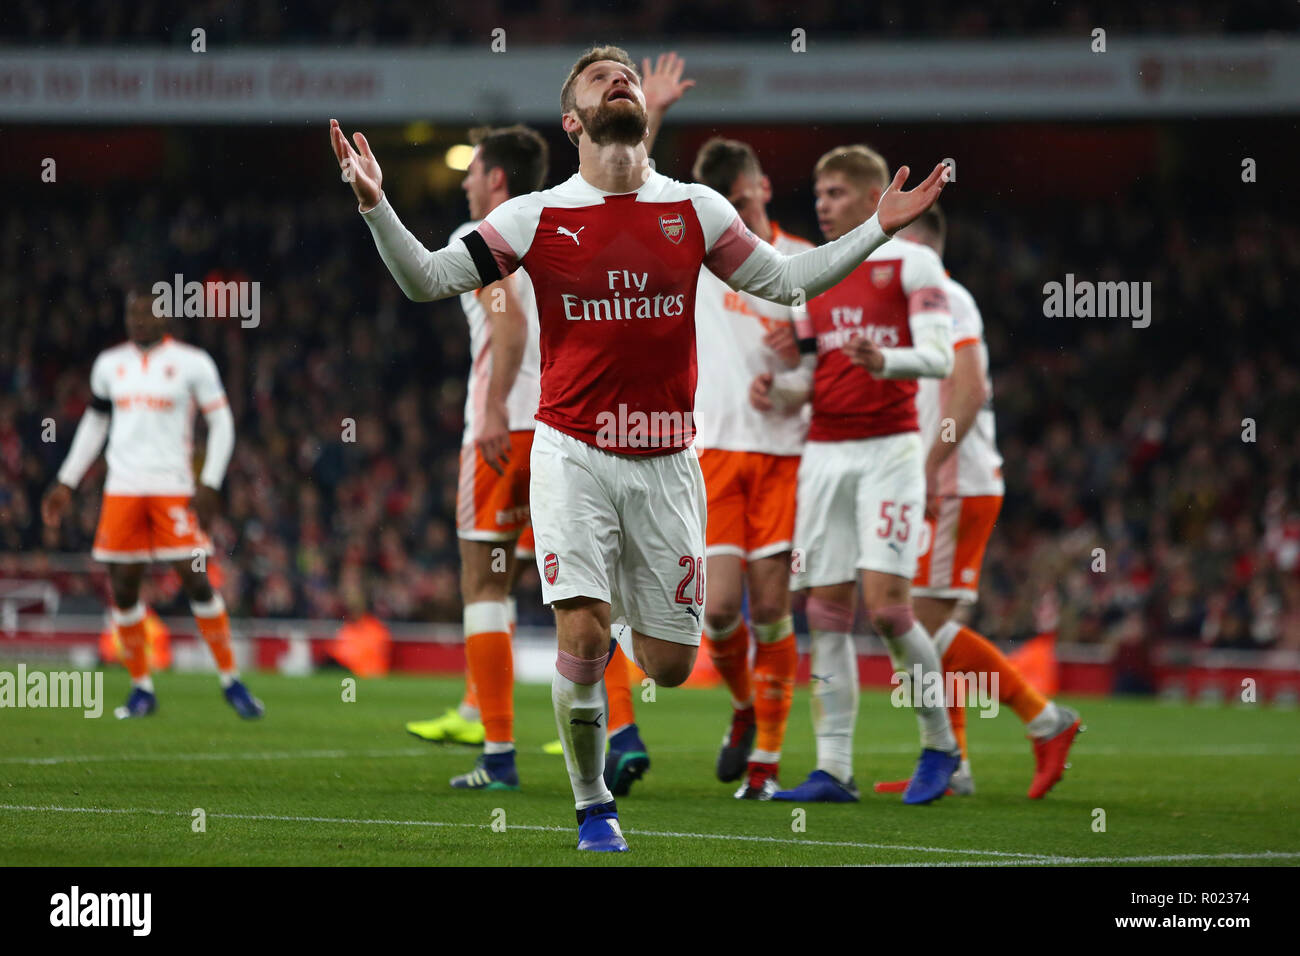 London, UK. 31st Oct, 2018. Shkodran Mustafi of Arsenal reacts after a missed chance - Arsenal v Blackpool, Carabao Cup - Fourth Round, Emirates Stadium, London (Holloway) - 31st October 2018  STRICTLY EDITORIAL USE ONLY - DataCo rules apply - The use of this image in a commercial context is strictly prohibited unless express permission has been given by the club(s) concerned. Examples of commercial usage include, but are not limited to, use in betting and gaming, marketing and advertising products. No use with unauthorised audio, video, data, fixture lists, club and or league logos or service - Stock Image